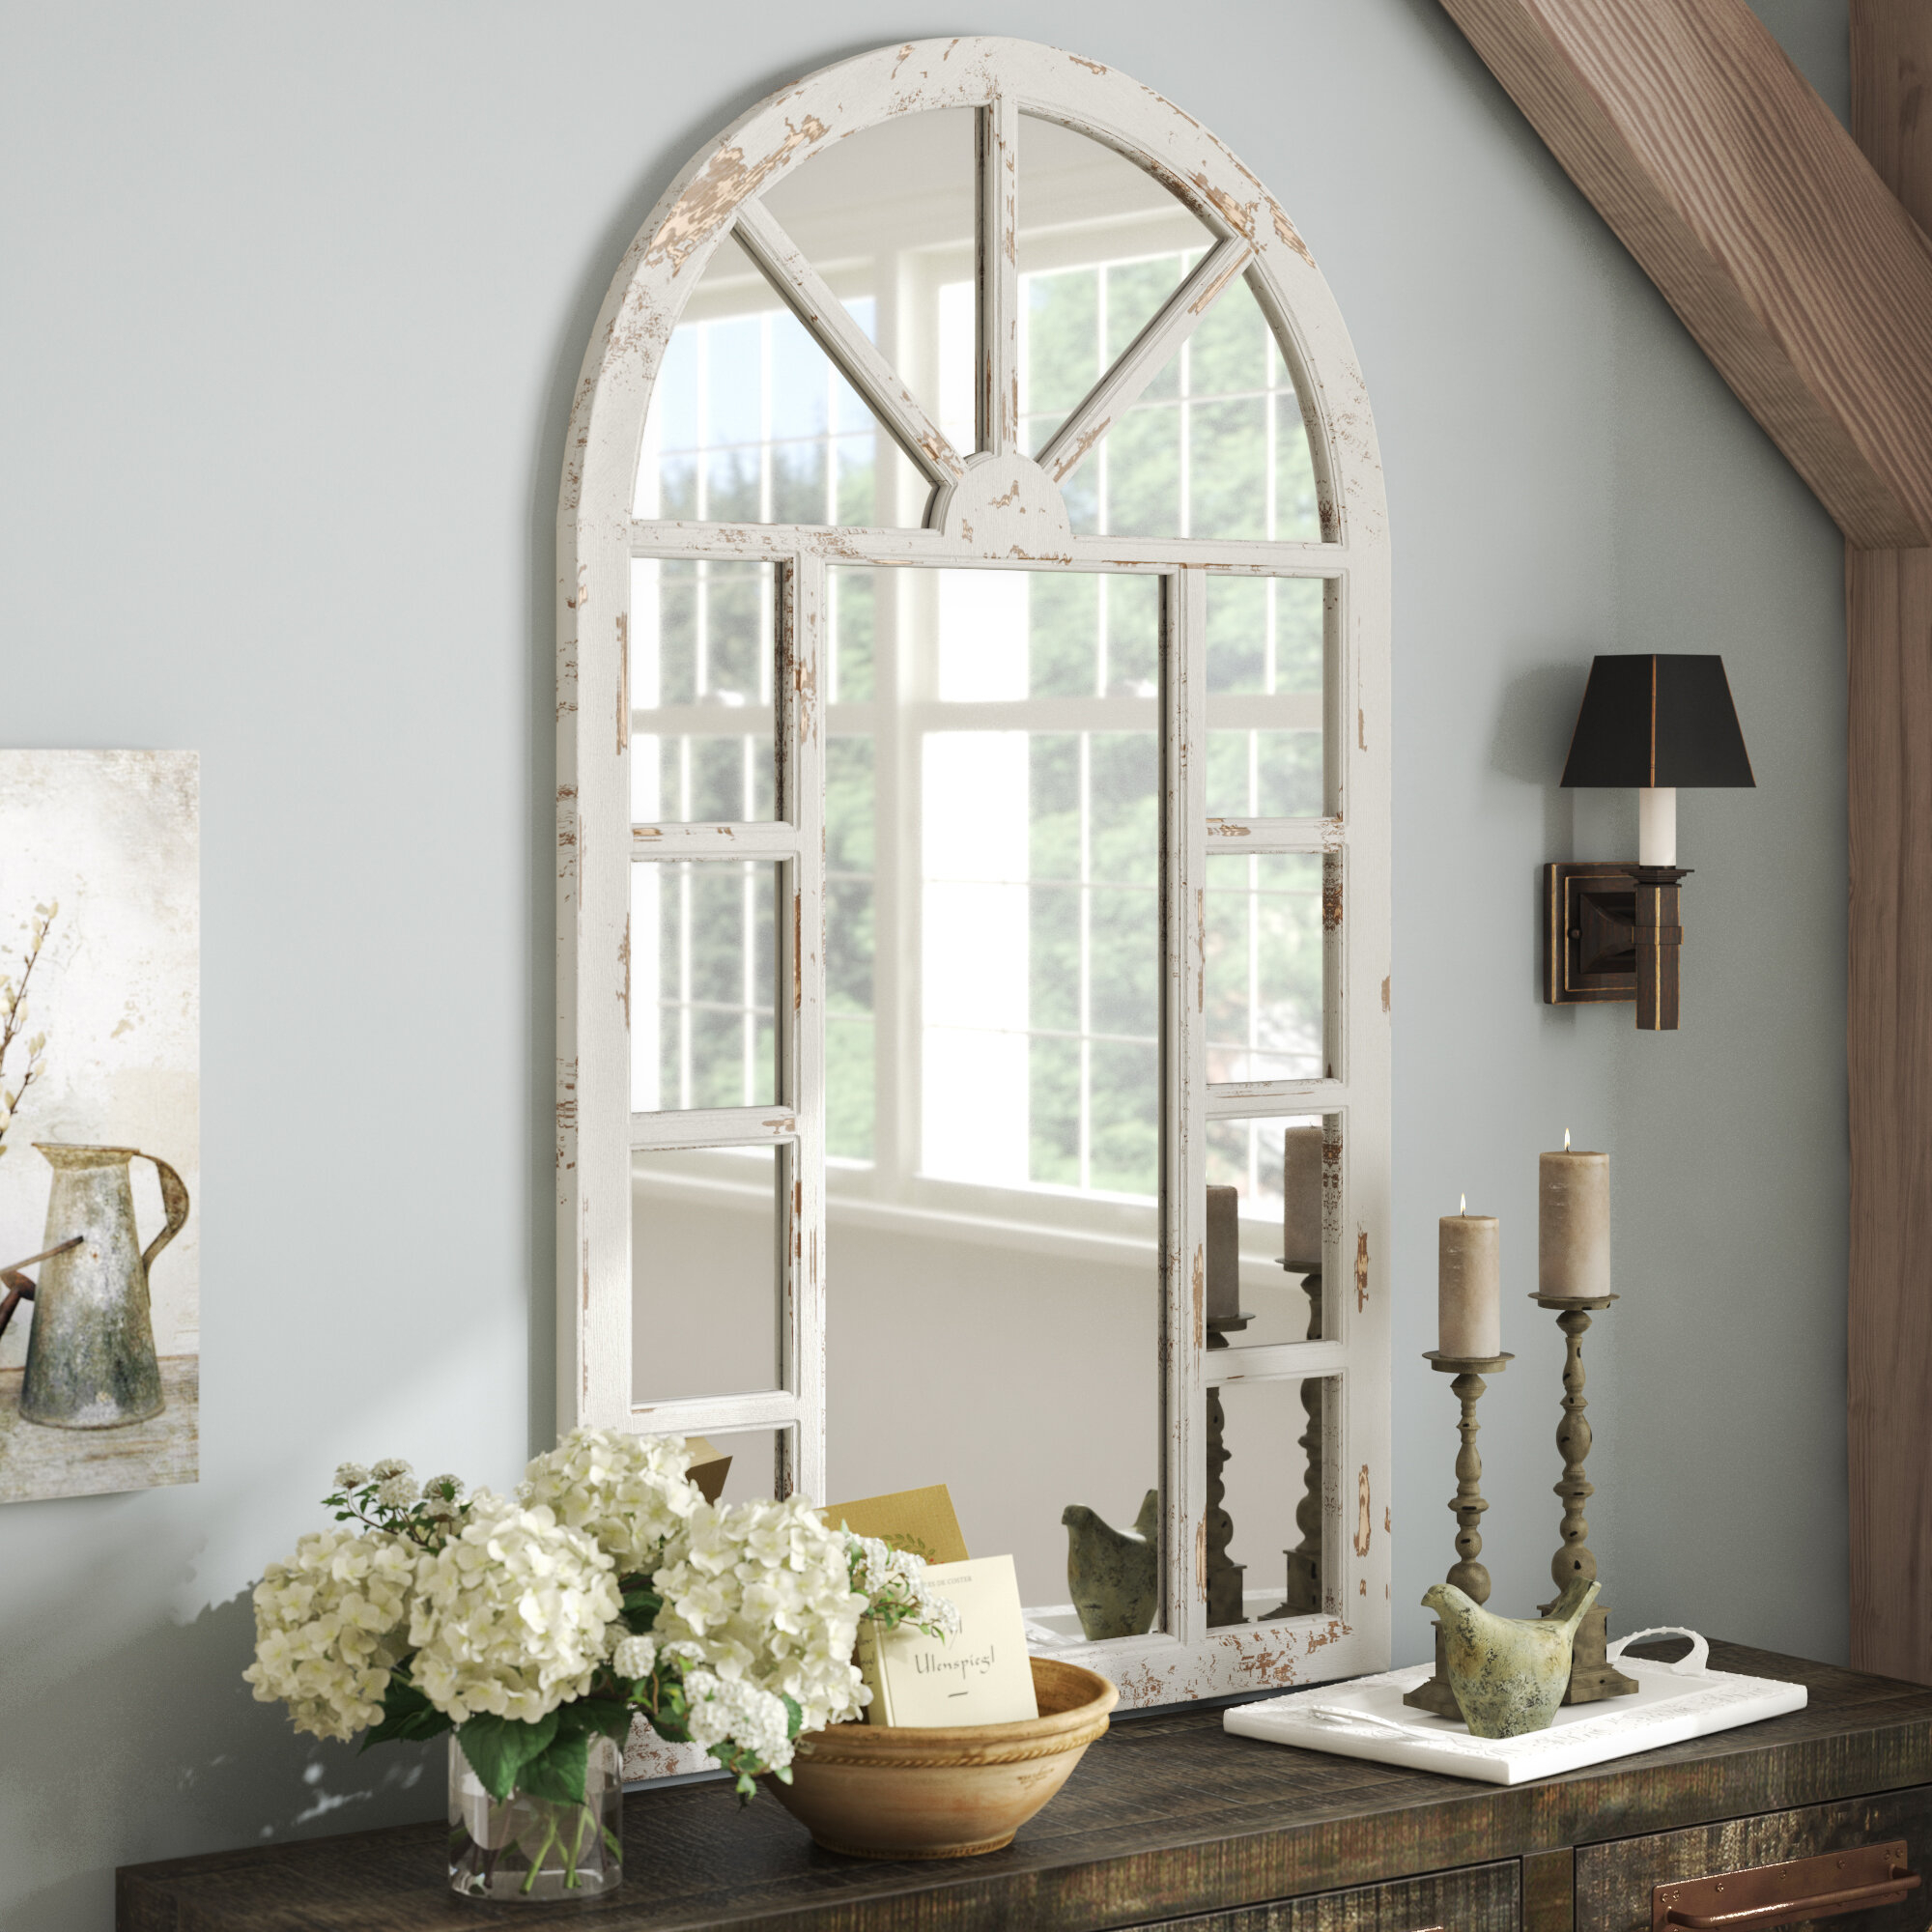 Gracie Oaks Radley Accent Mirror & Reviews | Wayfair With Regard To Romain Accent Mirrors (View 9 of 20)